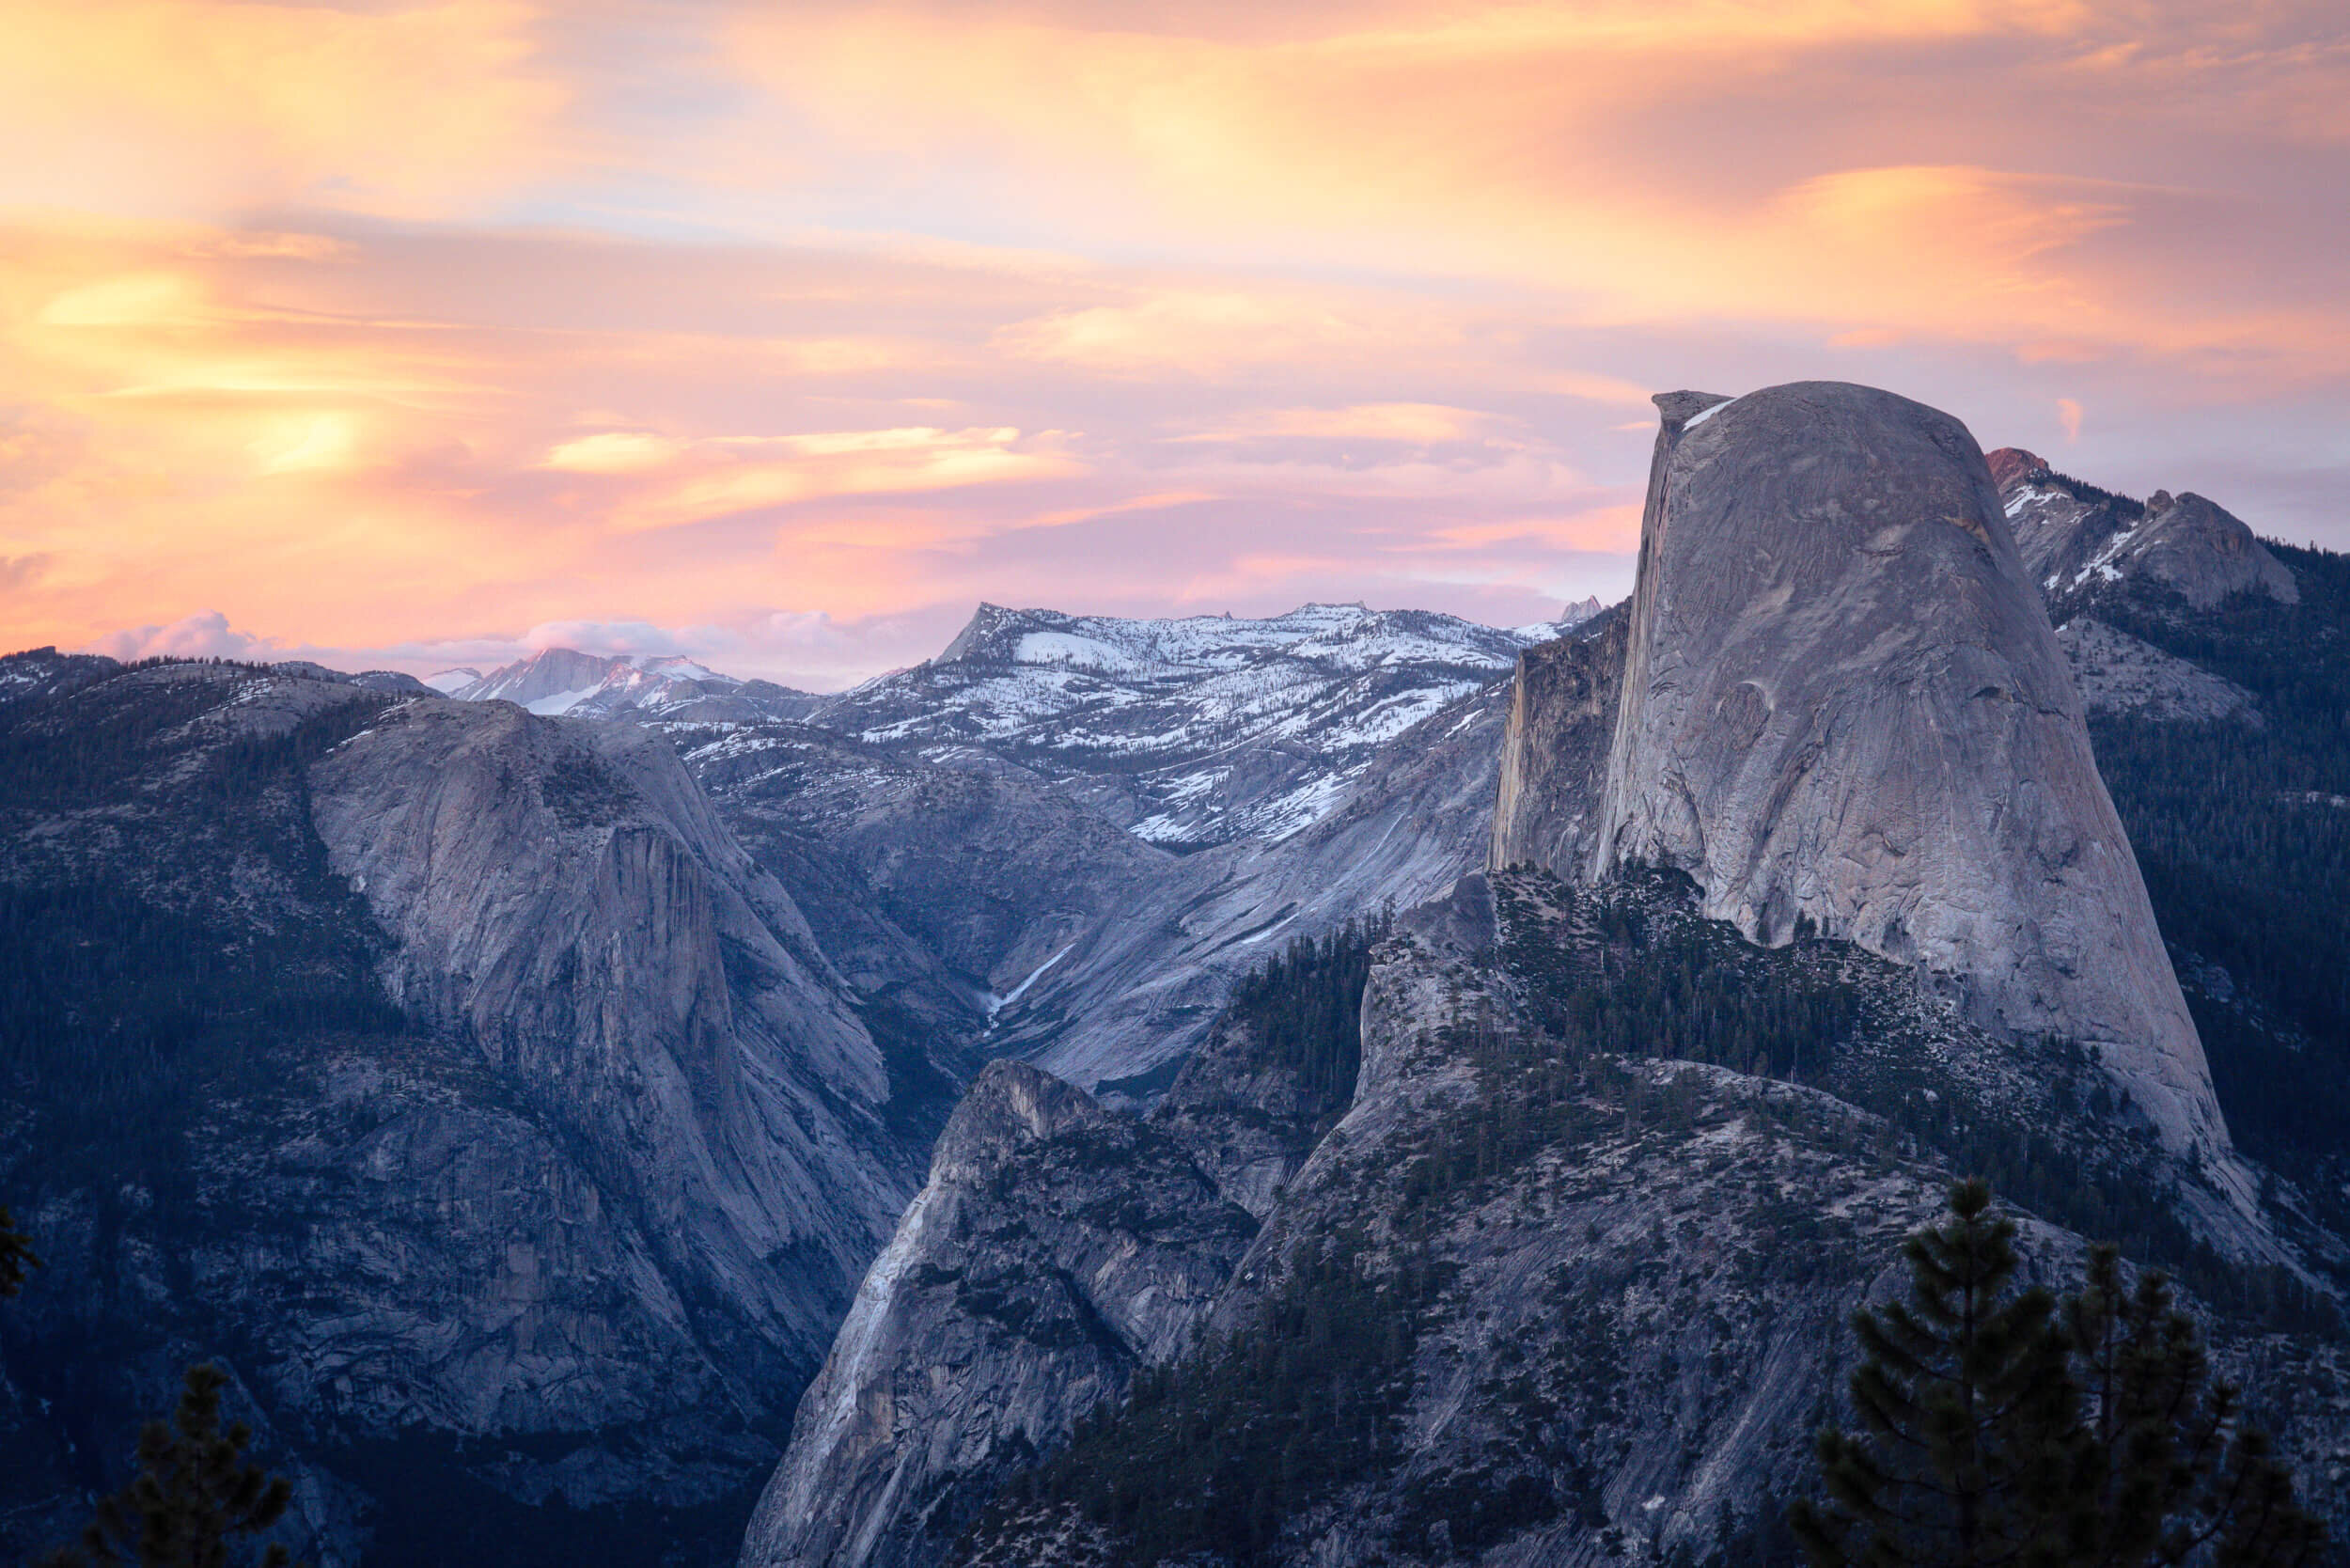 Sunset views of Half Dome in Yosemite National Park.